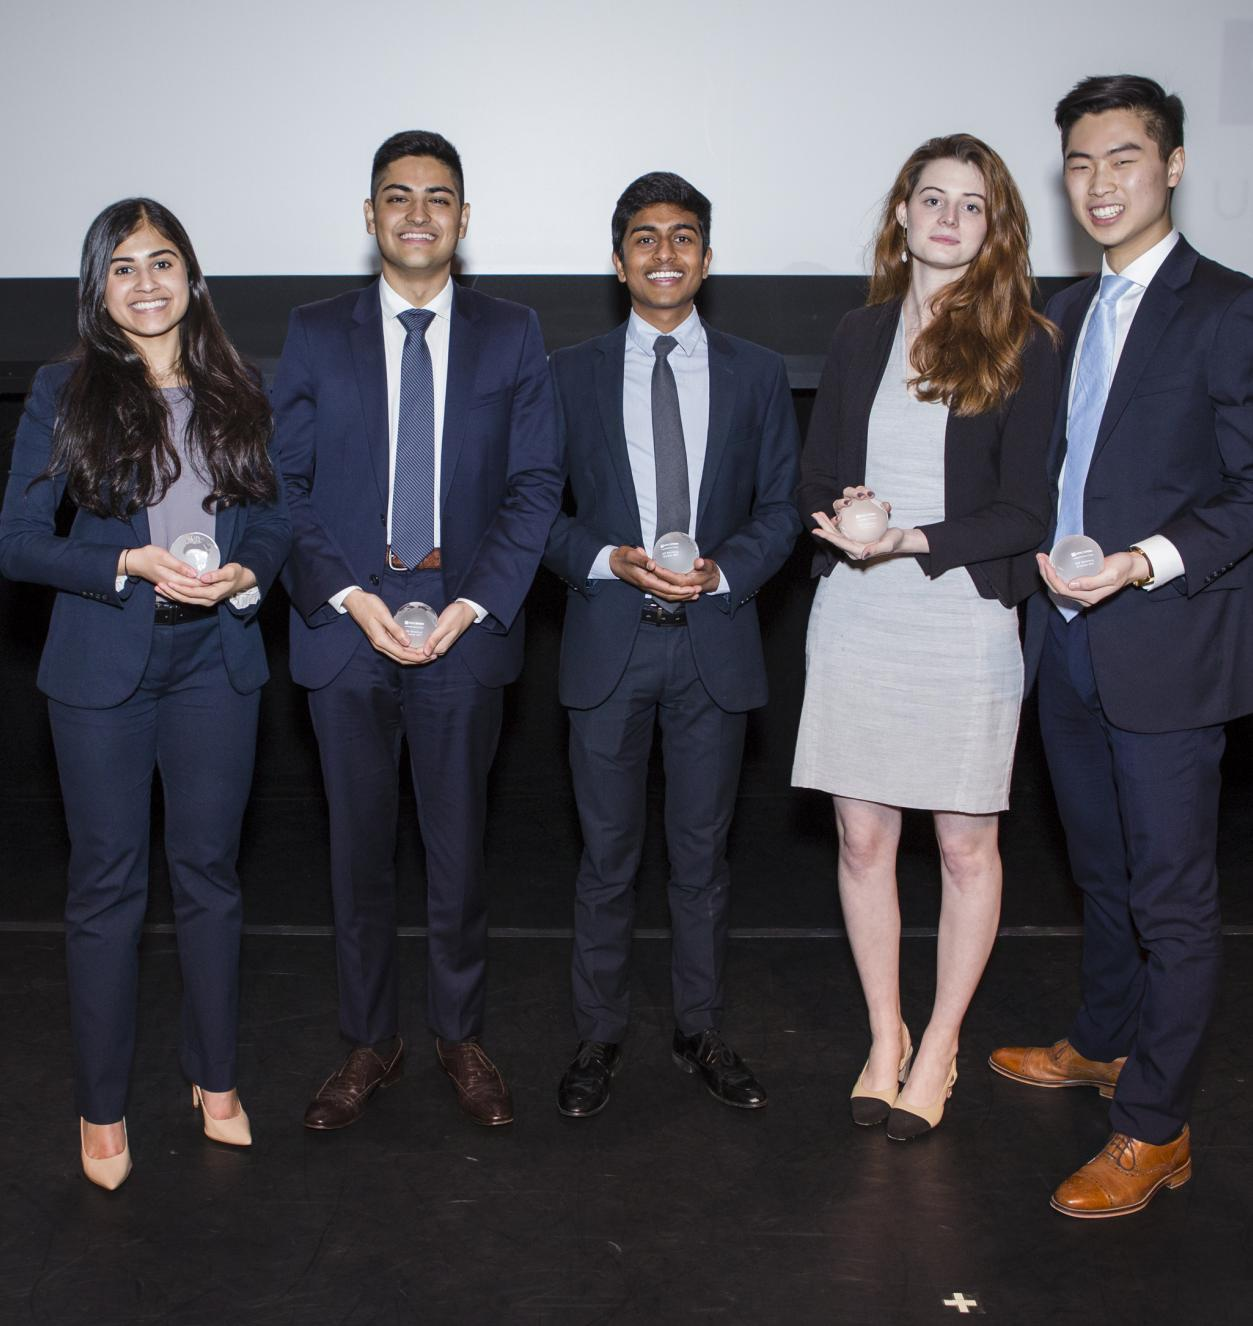 International Studies Program student speakers pose for a photo in the competition finals